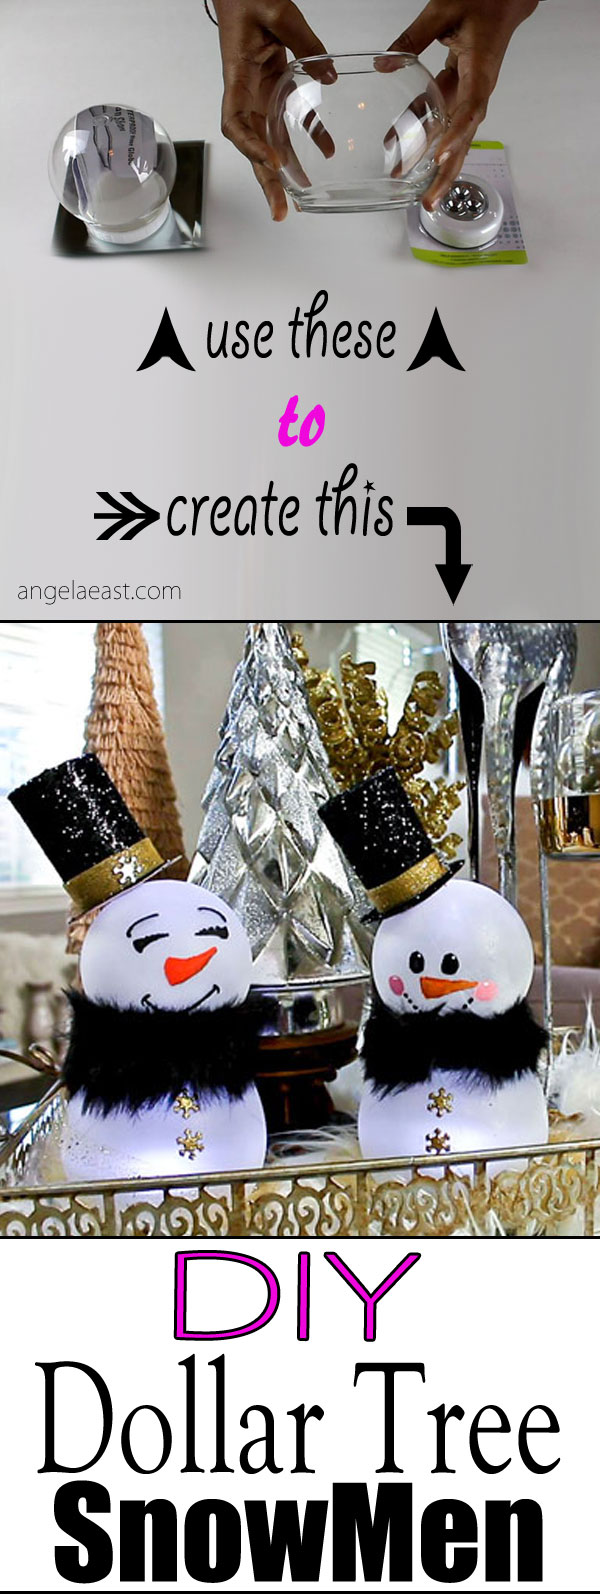 DIY Dollar Tree Snowman